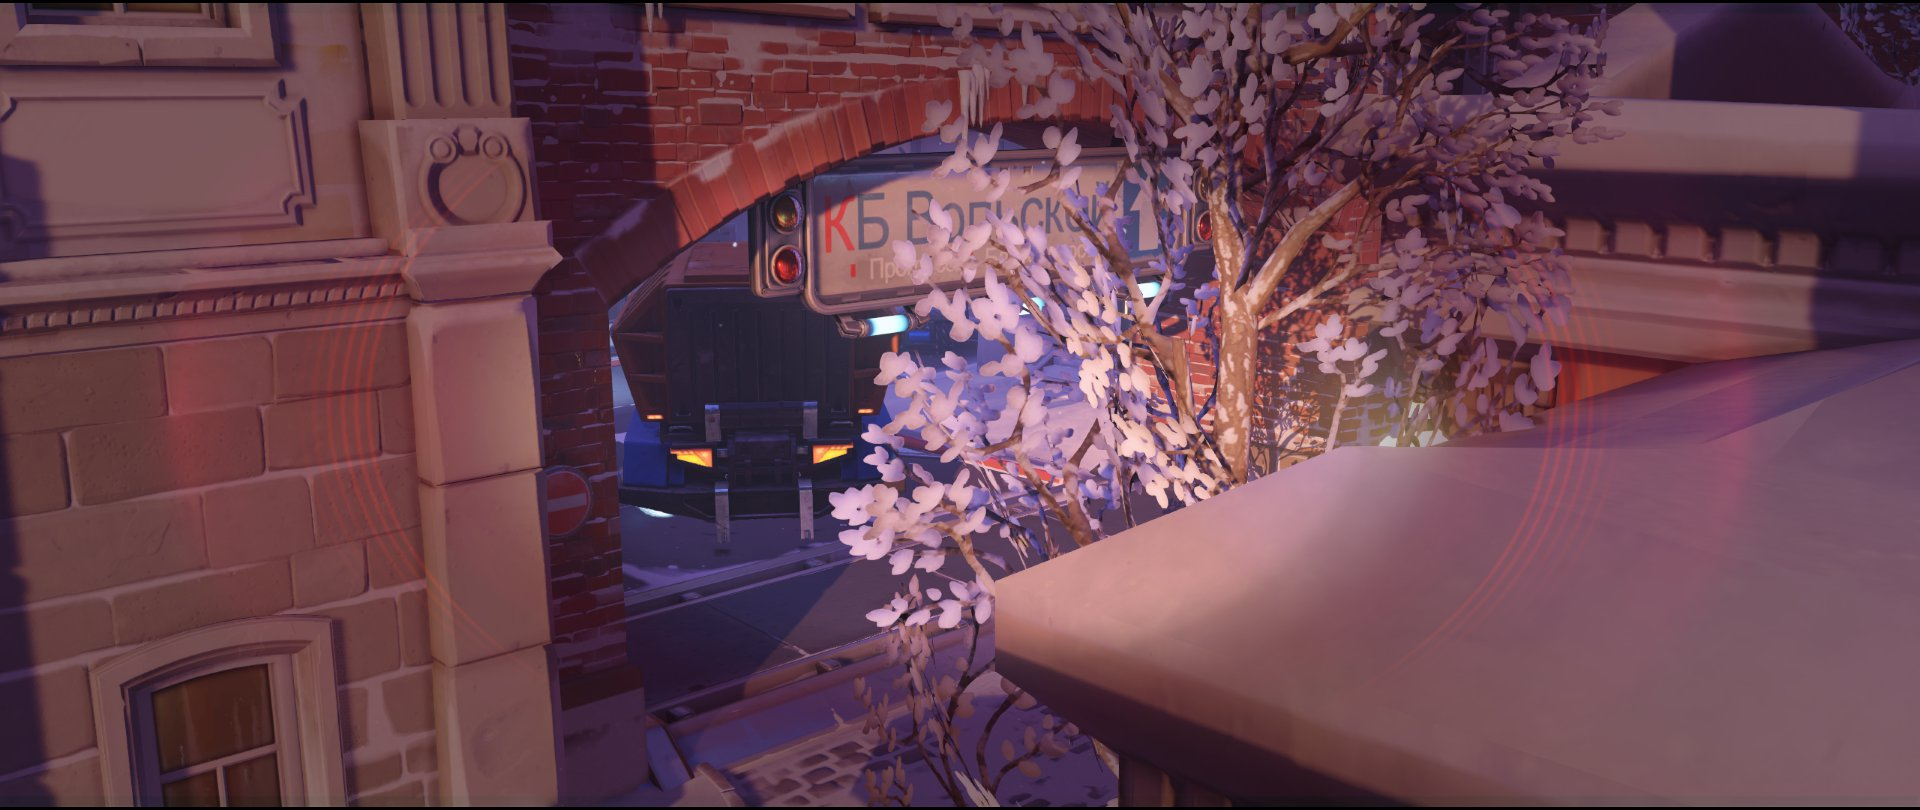 Shrine extreme left view attack sniping spot Widowmaker Volskaya Industries Overwatch .jpg